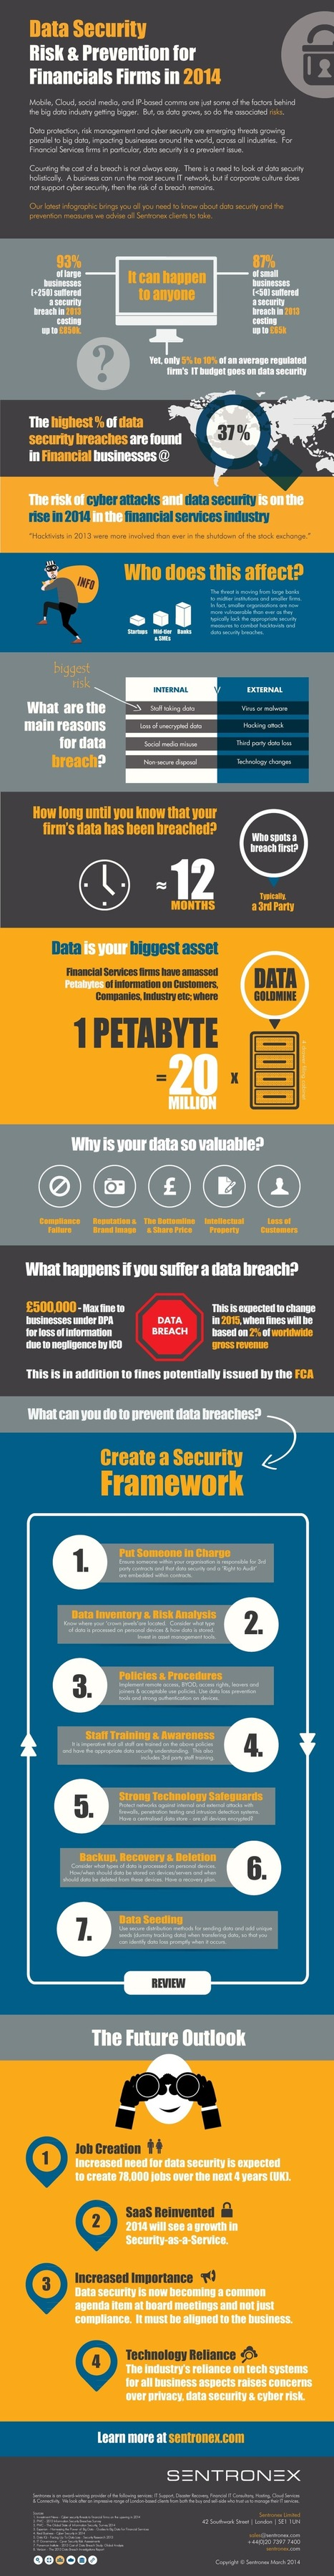 INFOGRAPHIC: Data Security Risk And Prevention | Cloud Central | Scoop.it